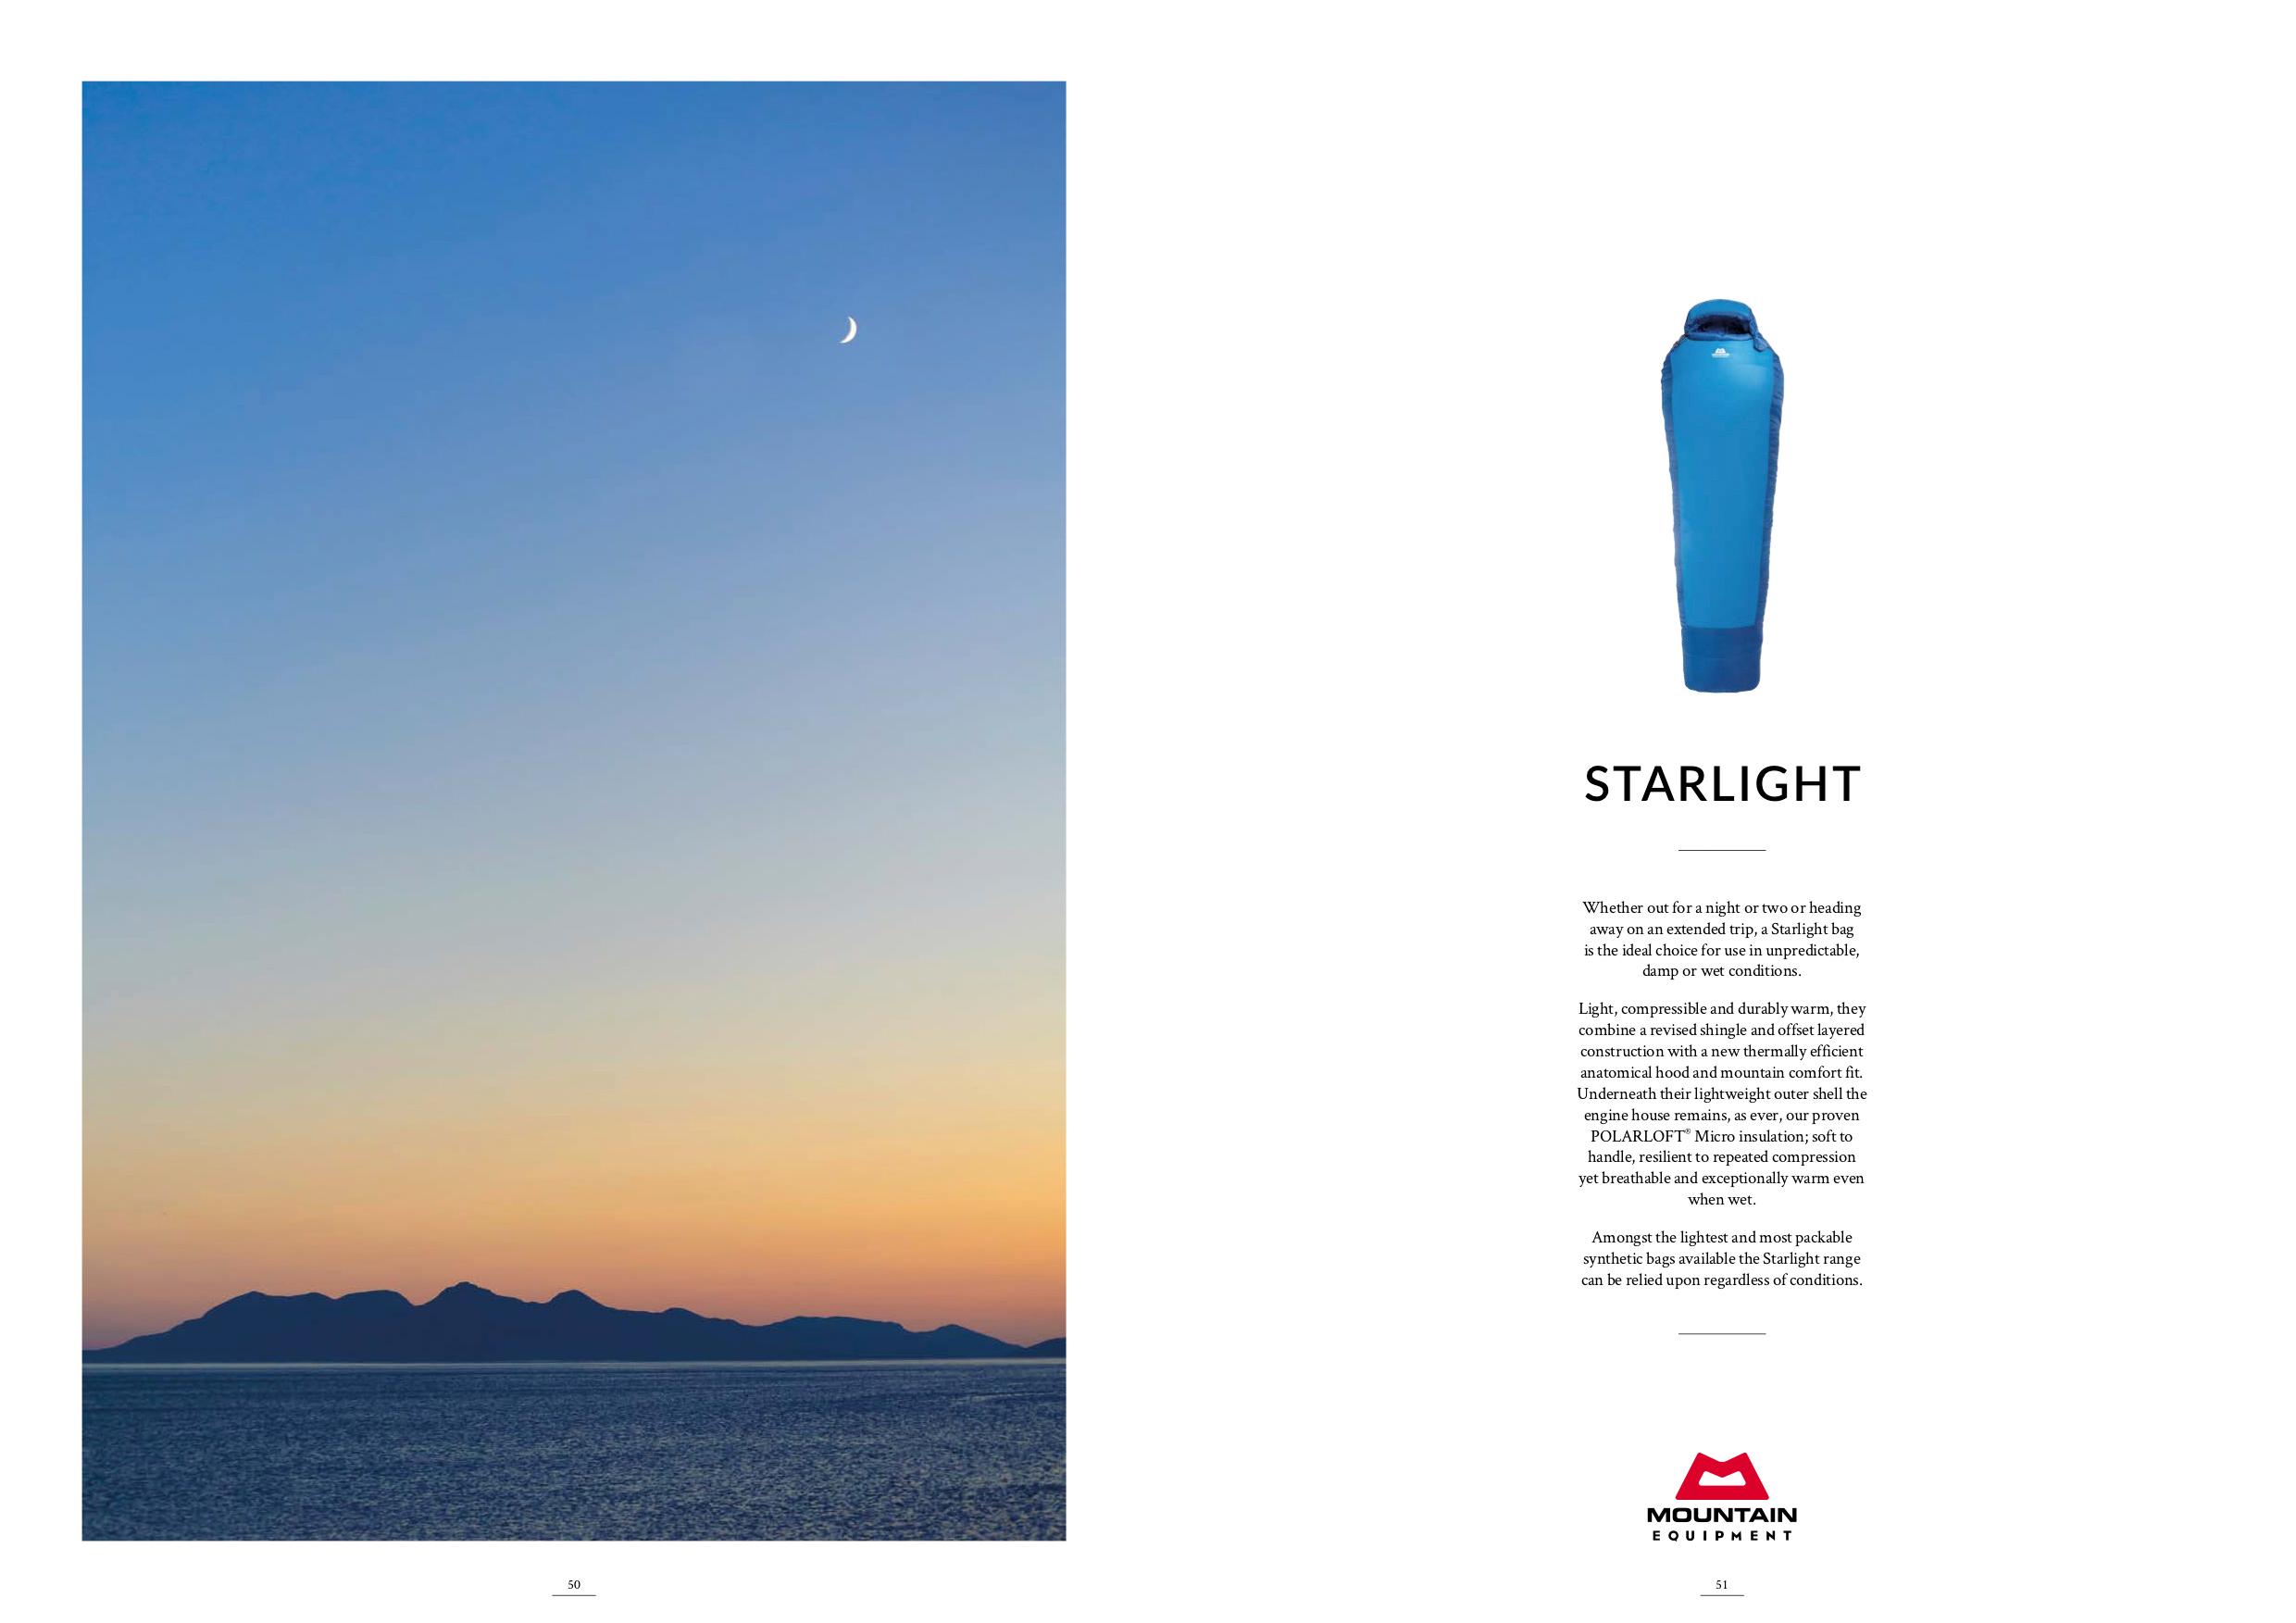 One of my images being used to promote a product in a trade magazine, which I achieved after a successful negotiation with Mountain Equipment's Marketing Manager.